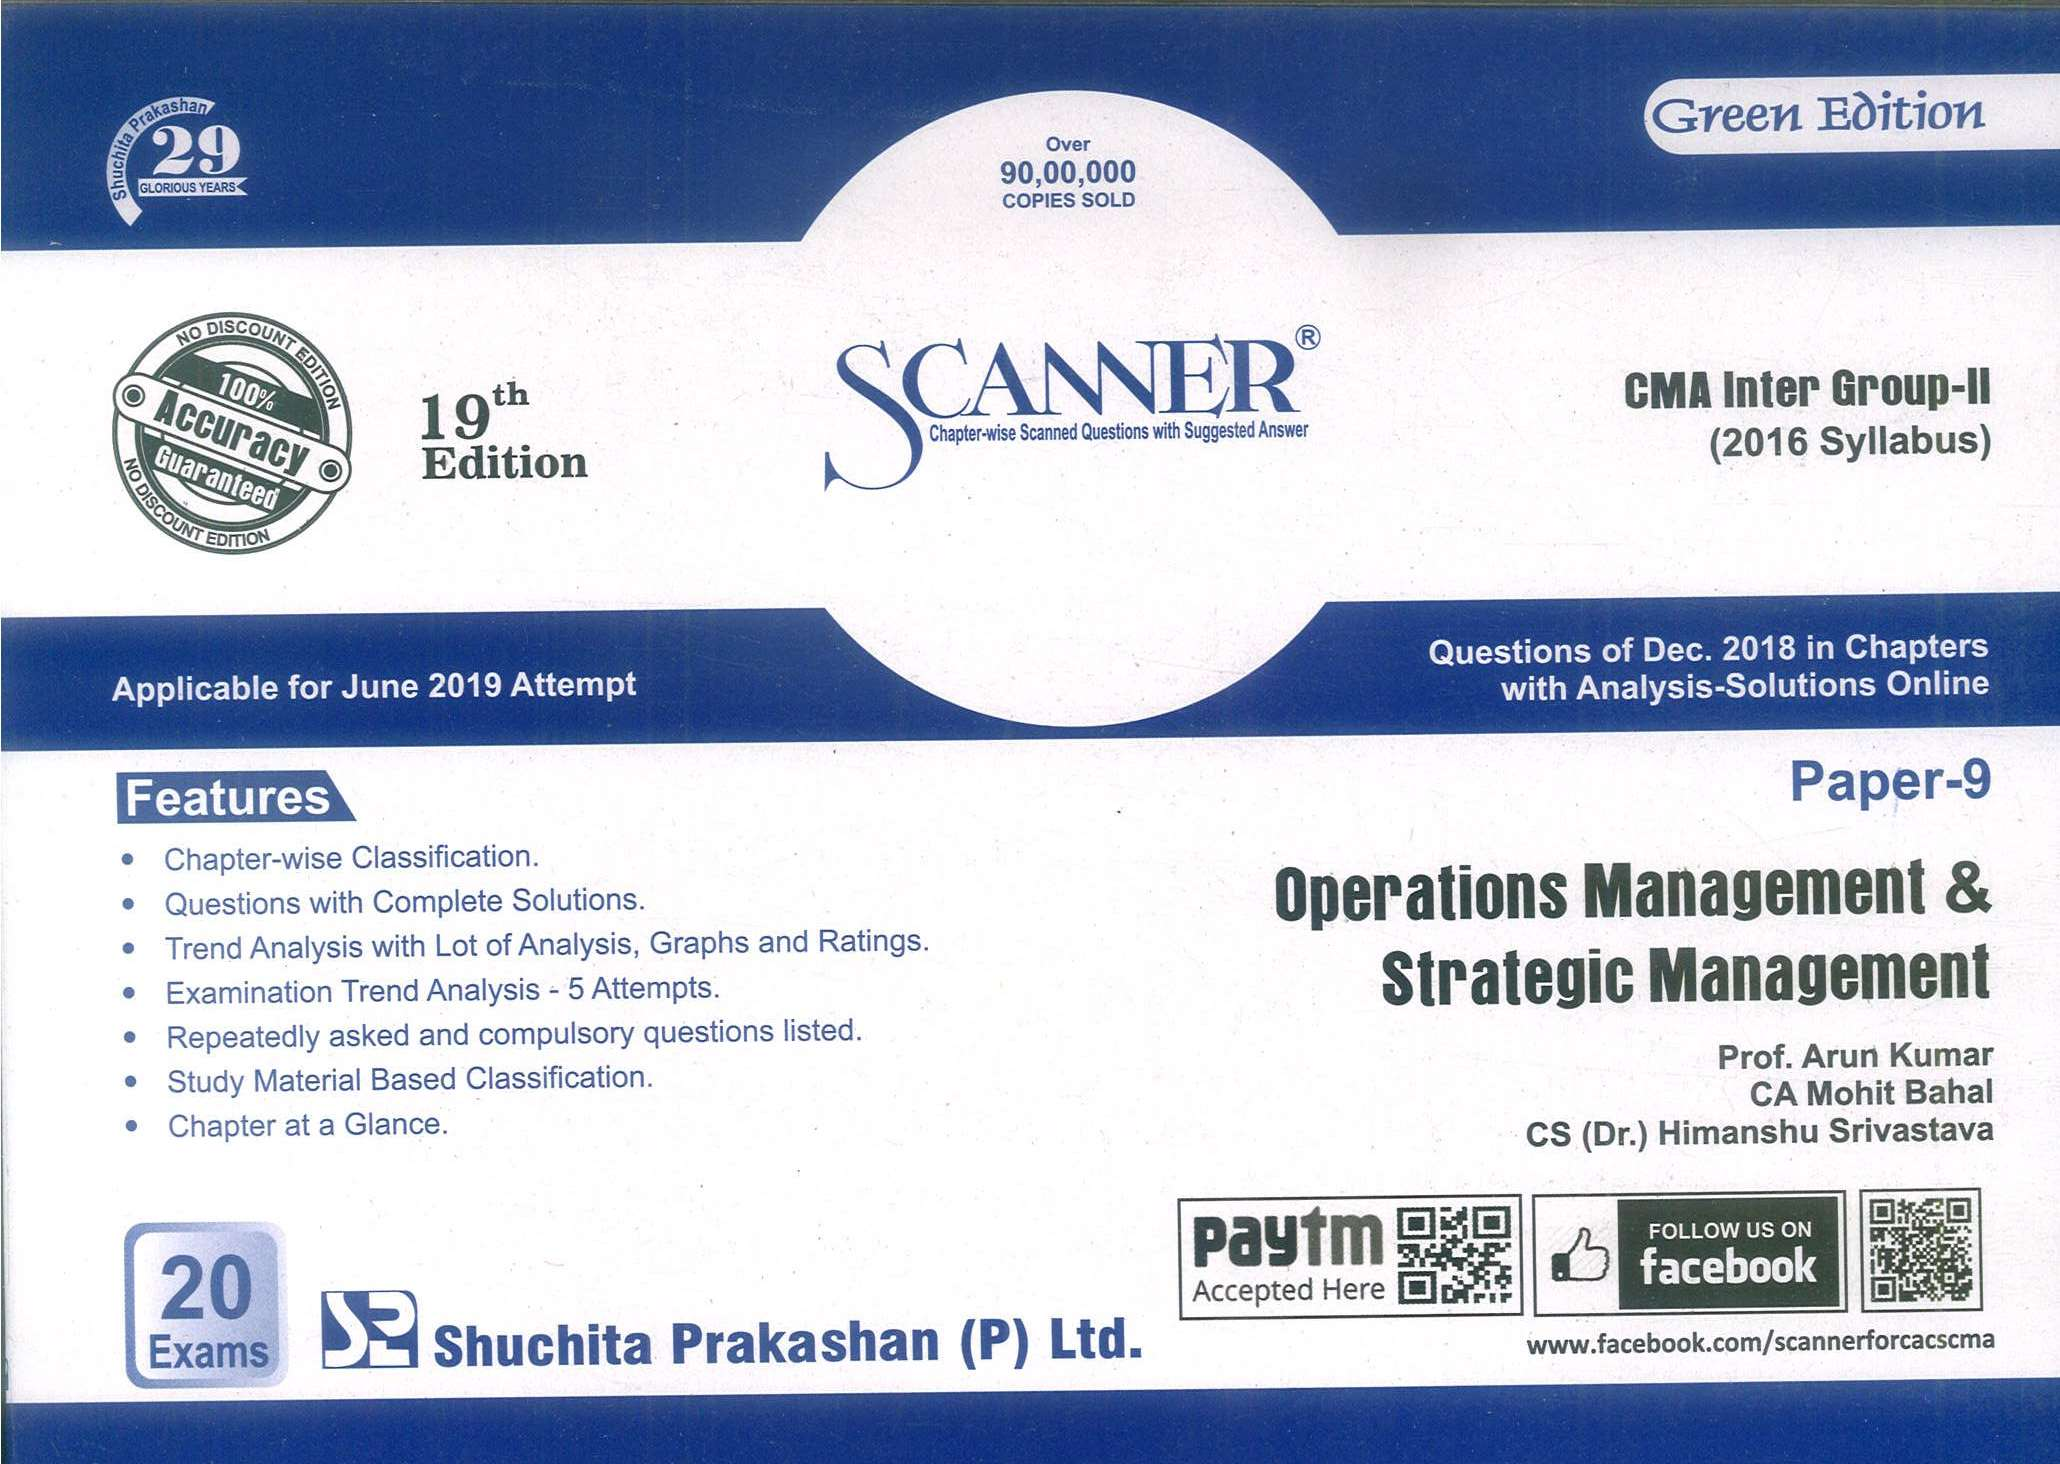 Shuchita Solved Scanner Operations Management & Information System for CMA (syllabus 2016) Inter Group II Paper 9 for June 2019 Exam New Syllabus by Prof. Arun Kumar,B.K. Agnihotri, CA Mohit Bahal and CS (Dr.) Himanshu Srivastava (Shuchita Prakashan) Edition 19th Jan 2019